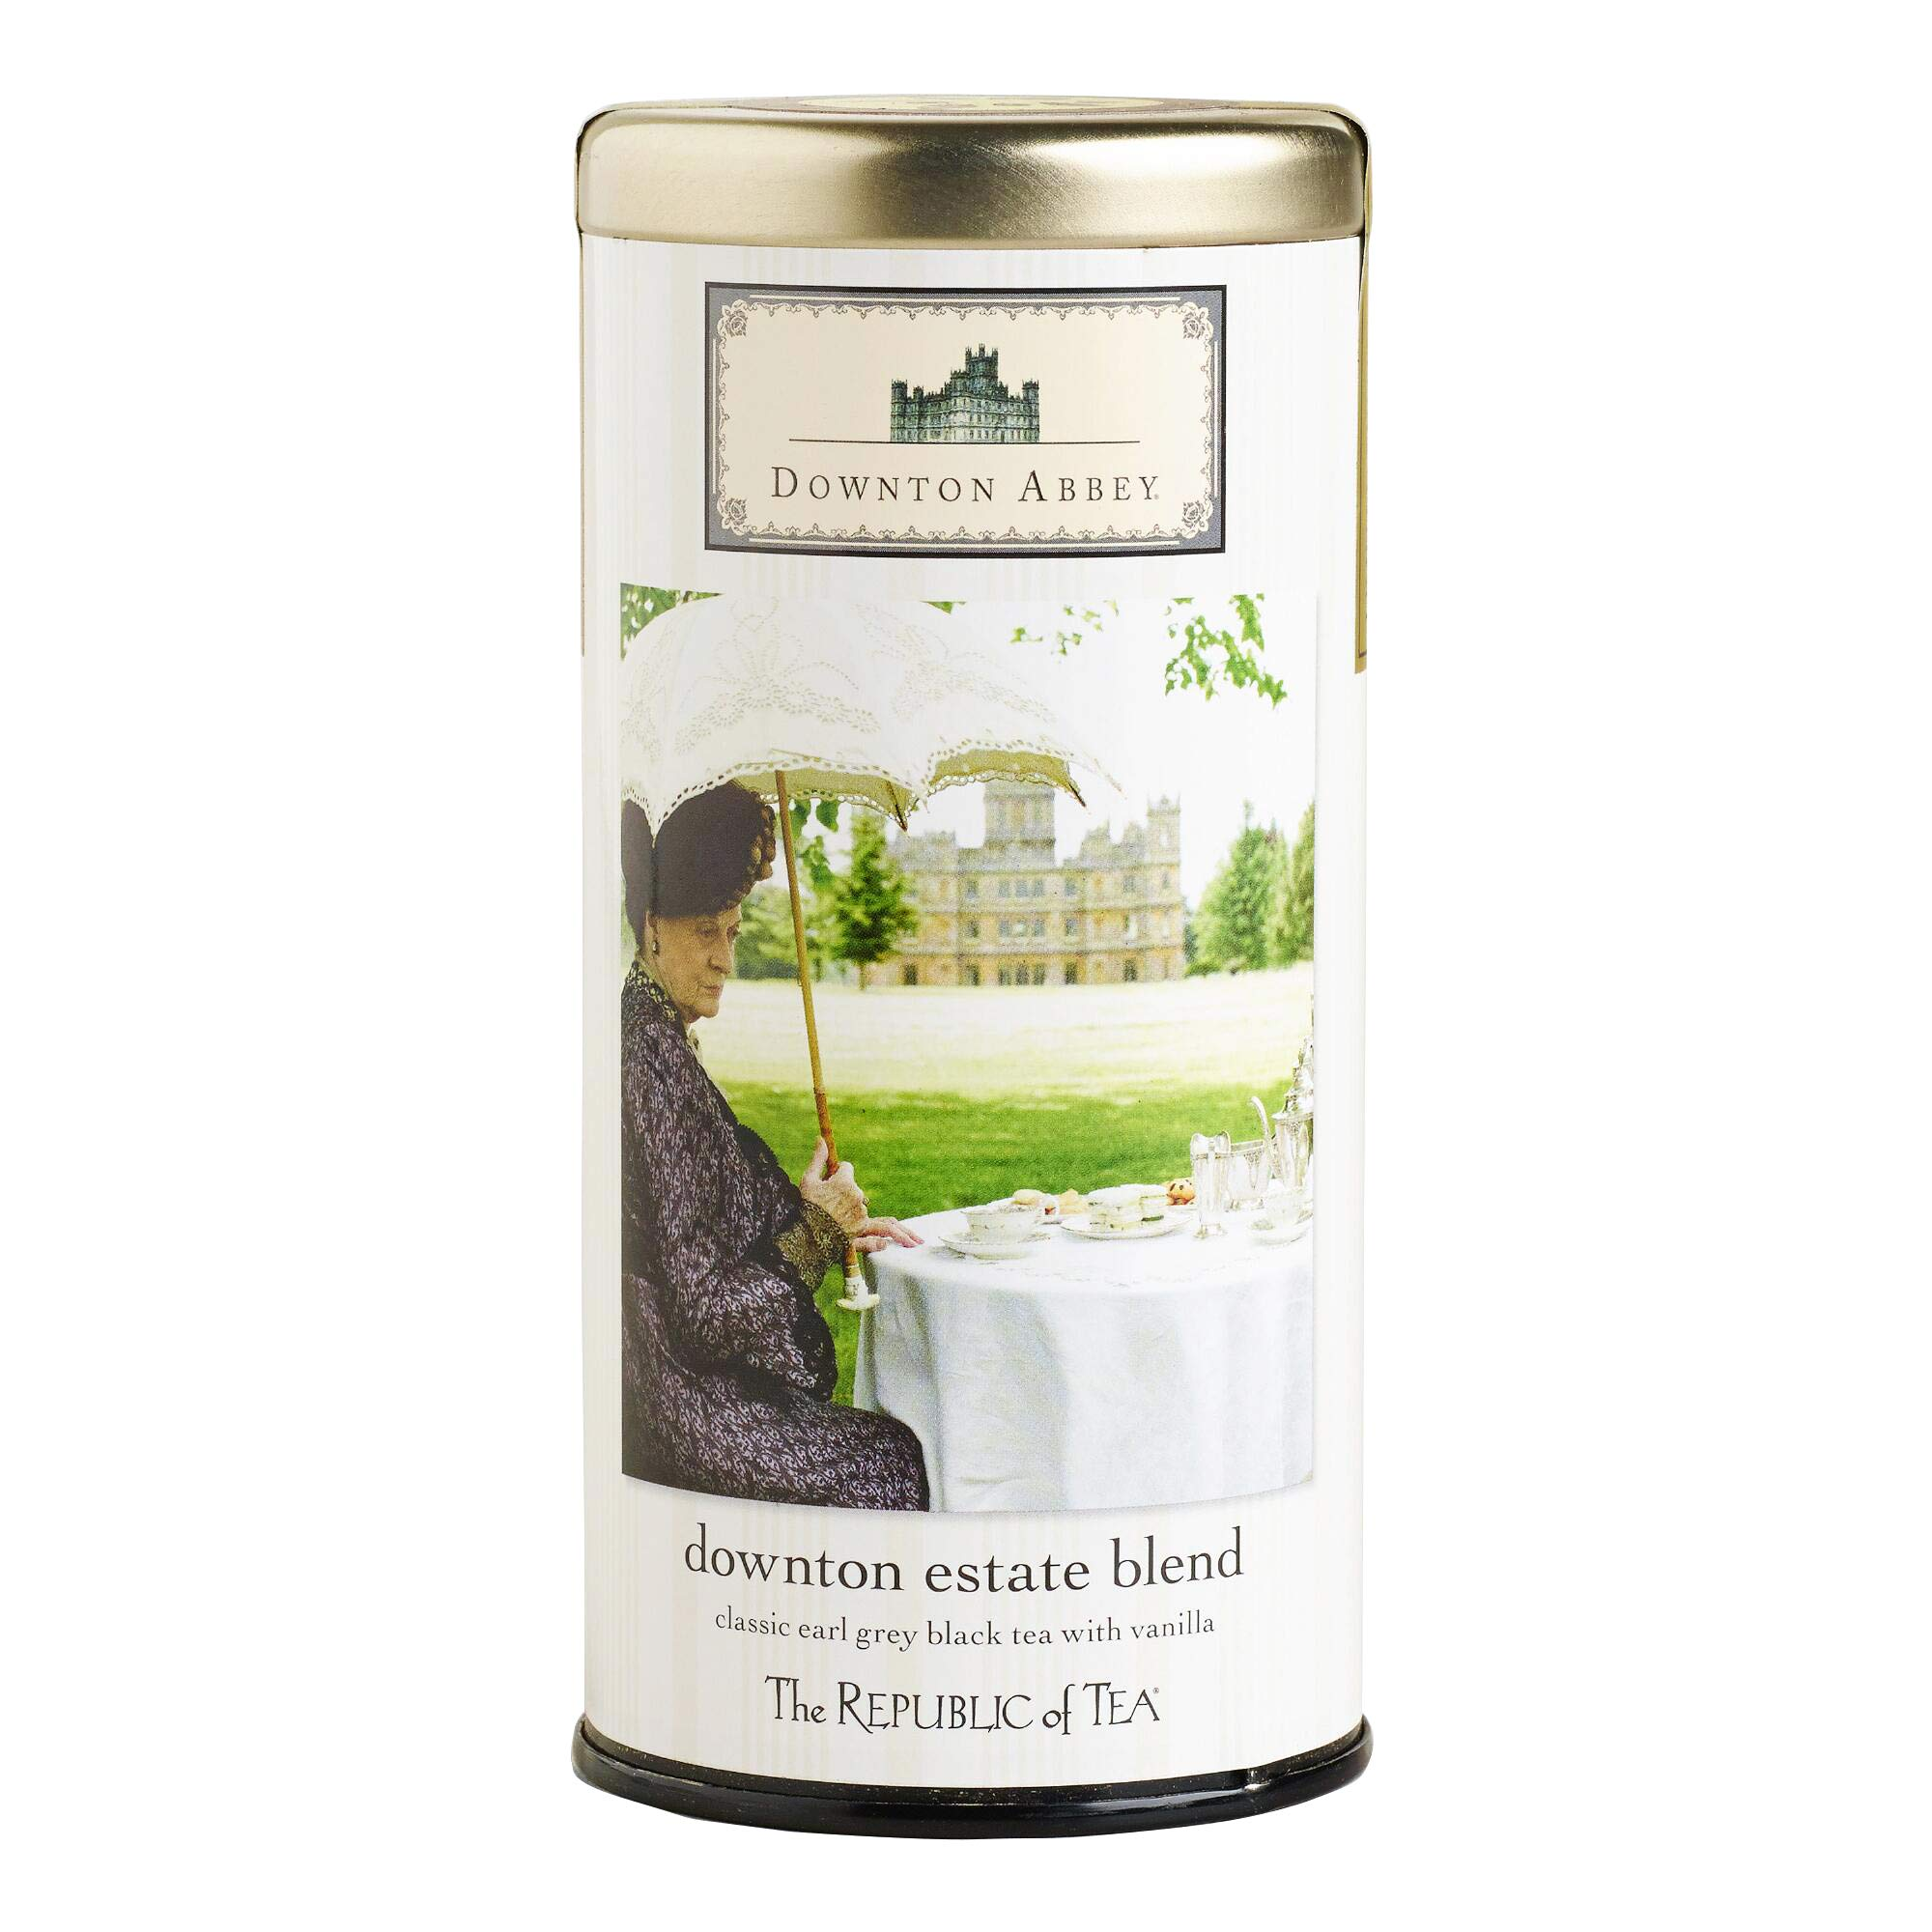 Republic of Tea Downton Abbey Estate Blend Classic Black Earl Grey Black Tea with Vanilla 36 Tea Bags by World Market